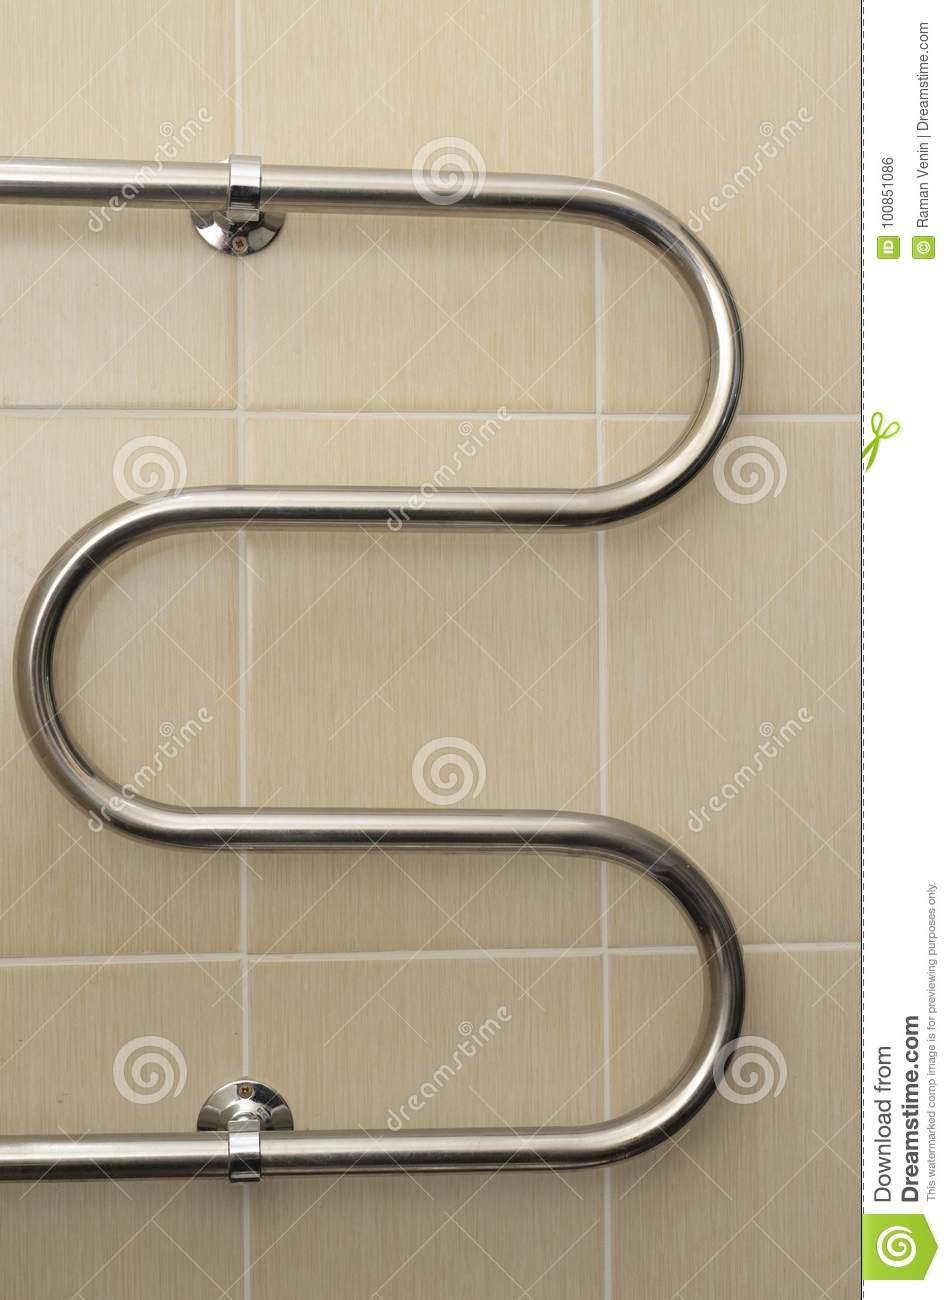 Metal Curved Coil In The Bathroom With Ceramic Tiles Stock Photo